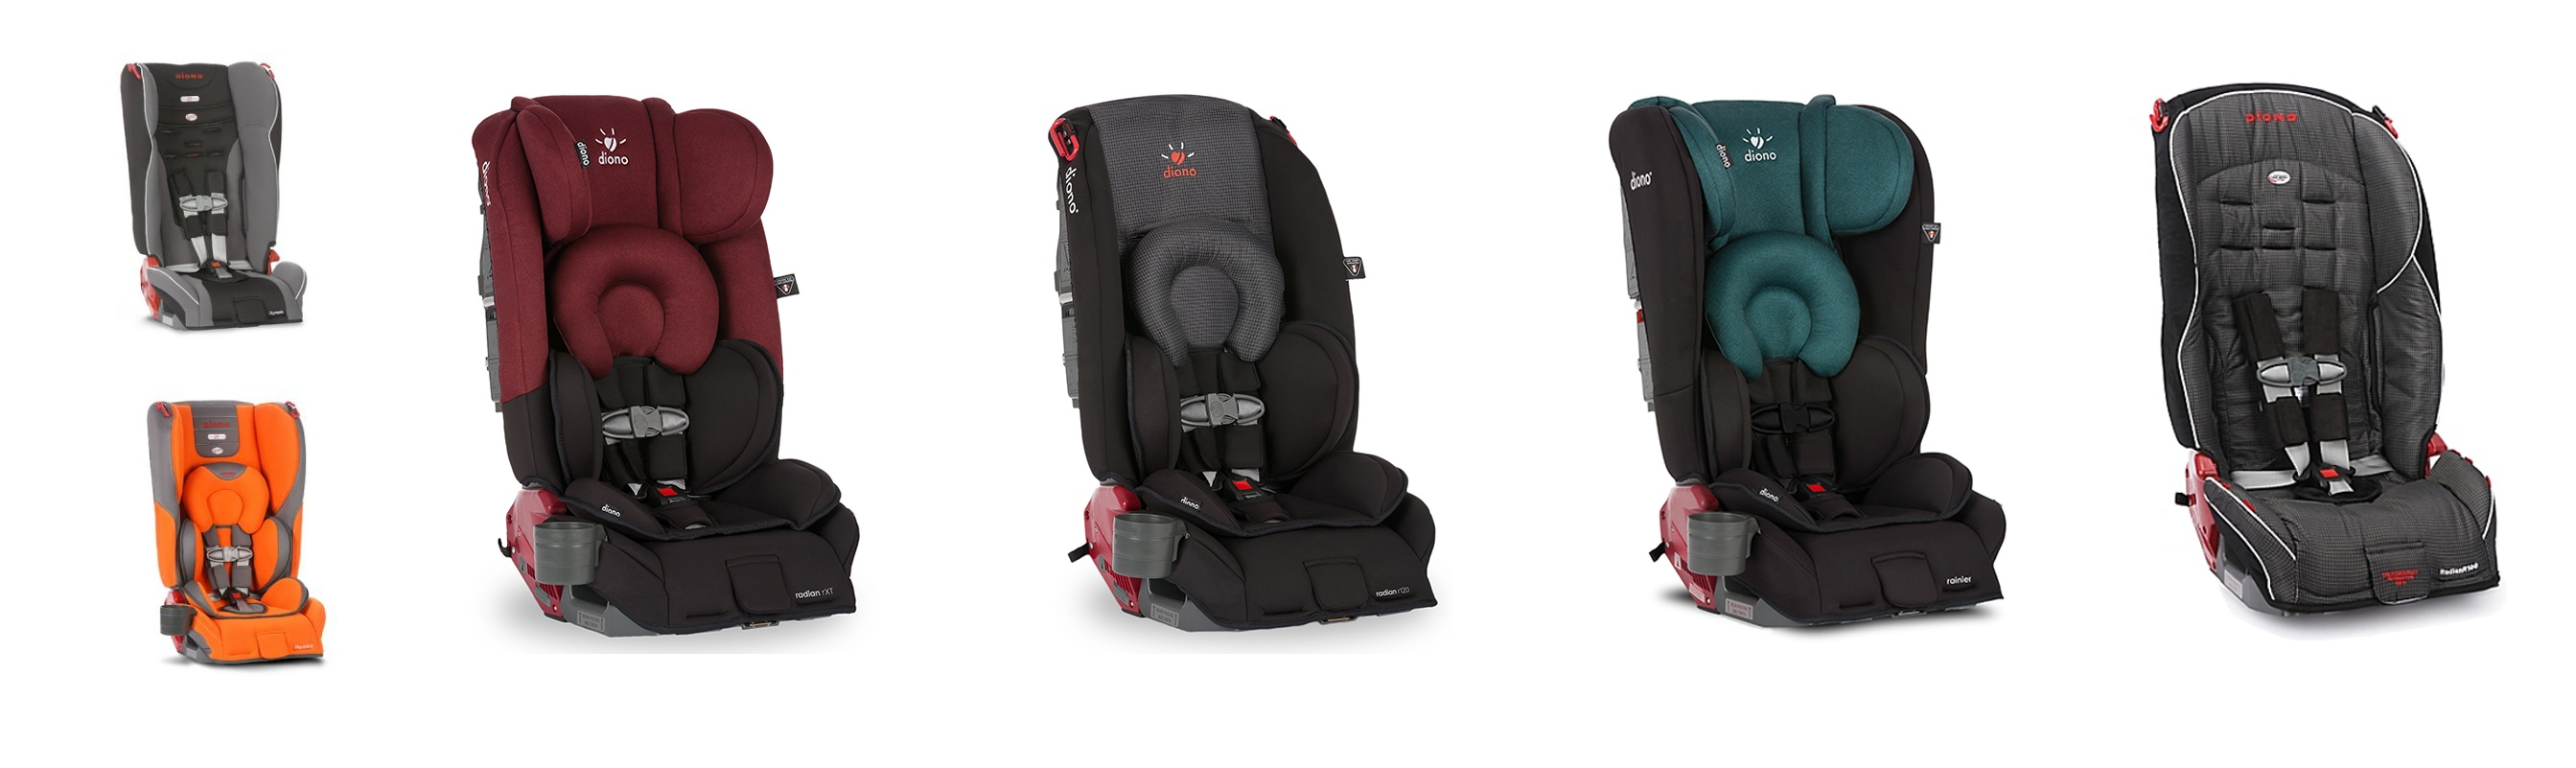 Diono Recalls Nearly 520 000 Child Car Seats Over Concerns About Restraint Strength